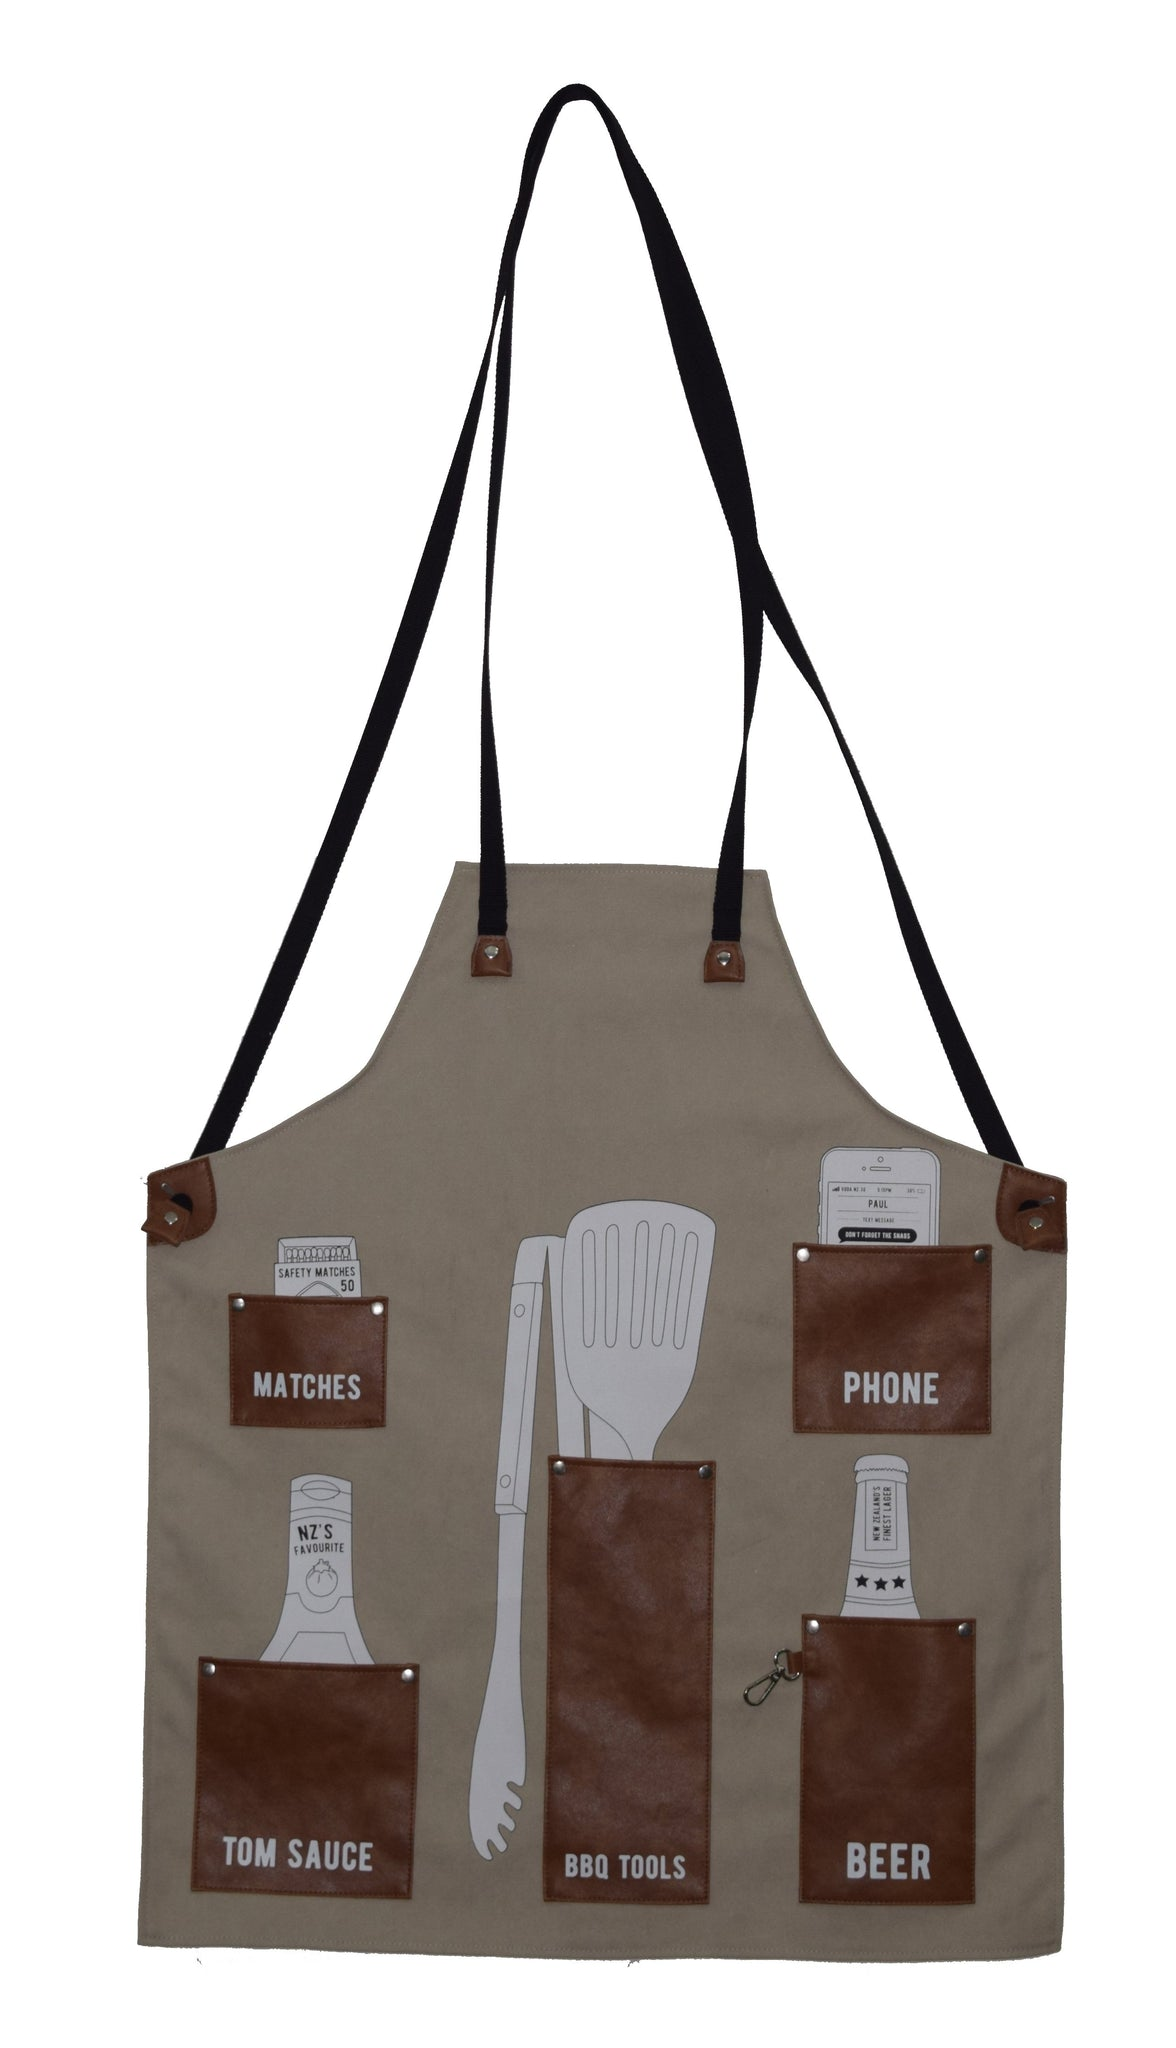 Moana Rd Moana Road BBQ Apron Tan The perfect man gift for that special man in your life! Cotton canvas apron with PU leather pockets and straps. It also comes with a Moana Rd Moana Road infinity bottle opener!